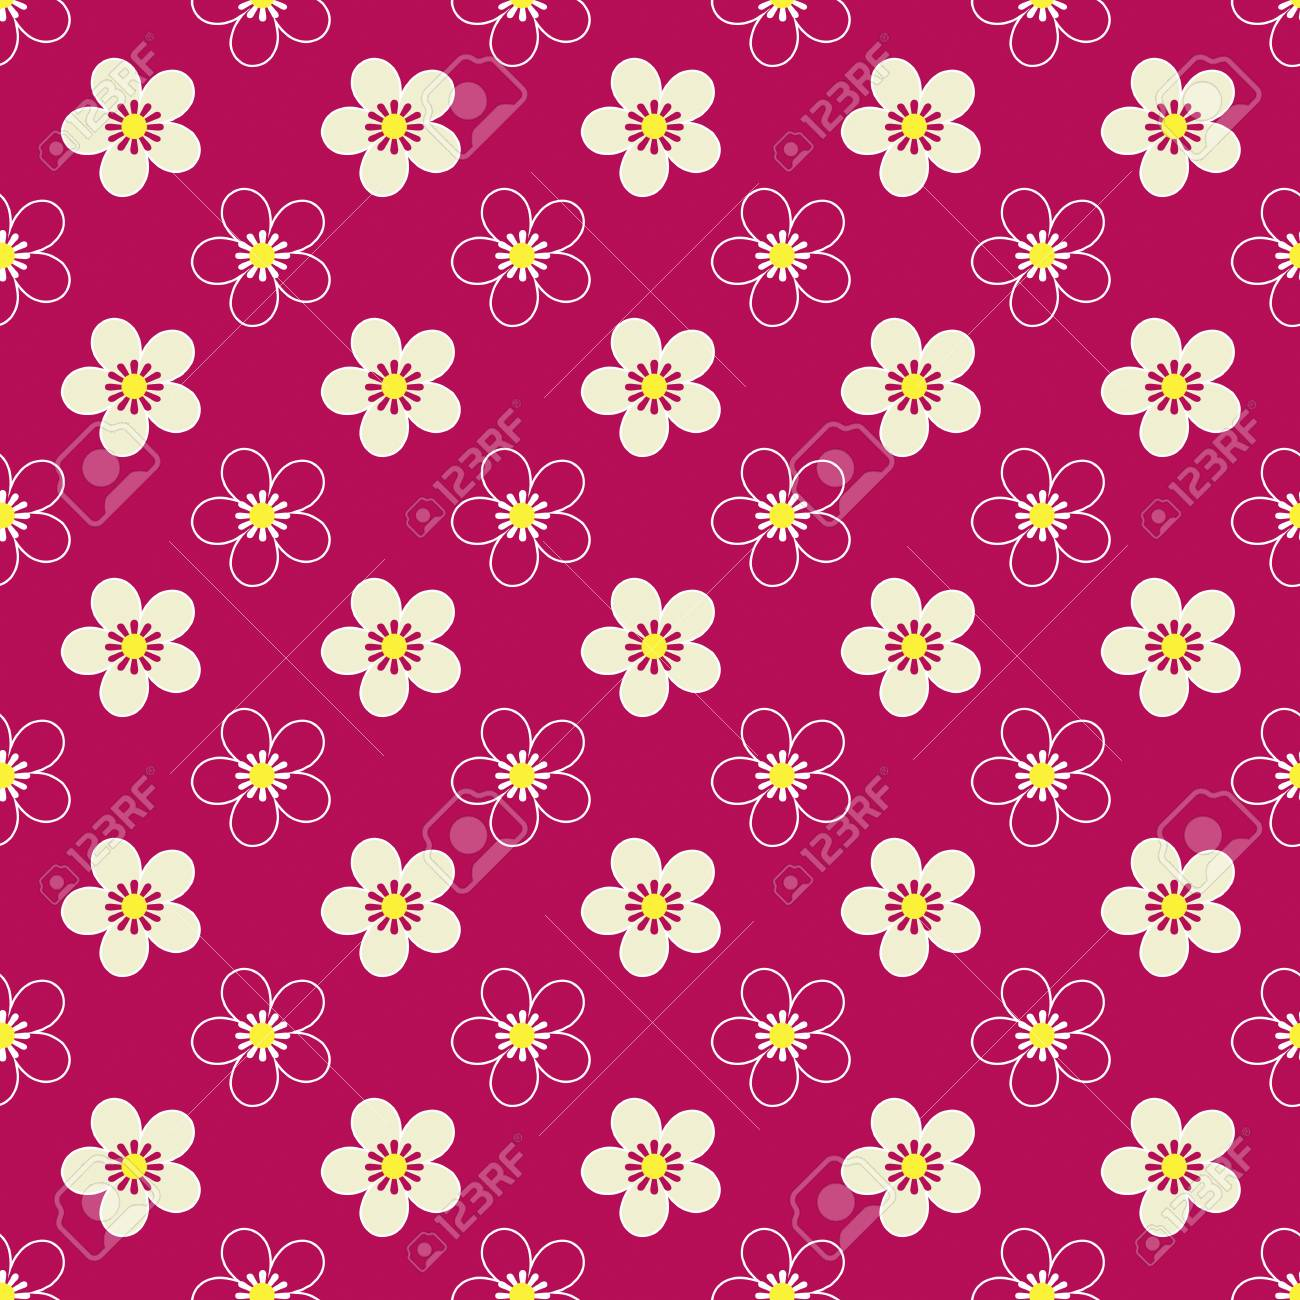 Seamless Floral Kids Bright Pattern On Red Background Stock Photo Picture And Royalty Free Image Image 80704387